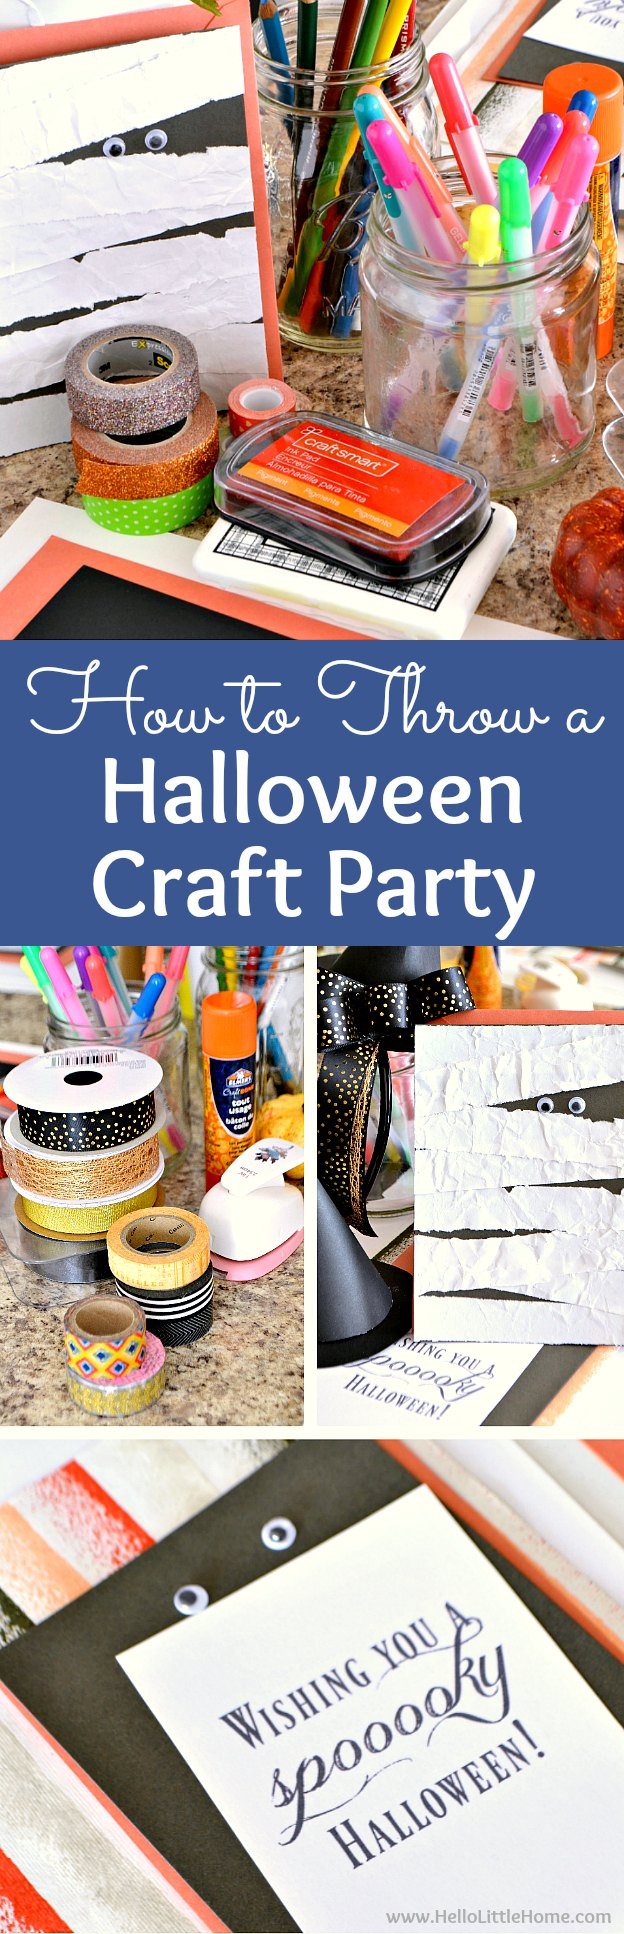 How to Throw a Halloween Craft Party! Gather your friends for this unique halloween party idea that's perfect for adults or for kids! Full of easy halloween crafts, Halloween party food ideas, and tips for staying organized, you're going to love these Halloween craft party ideas. | Hello Little Home